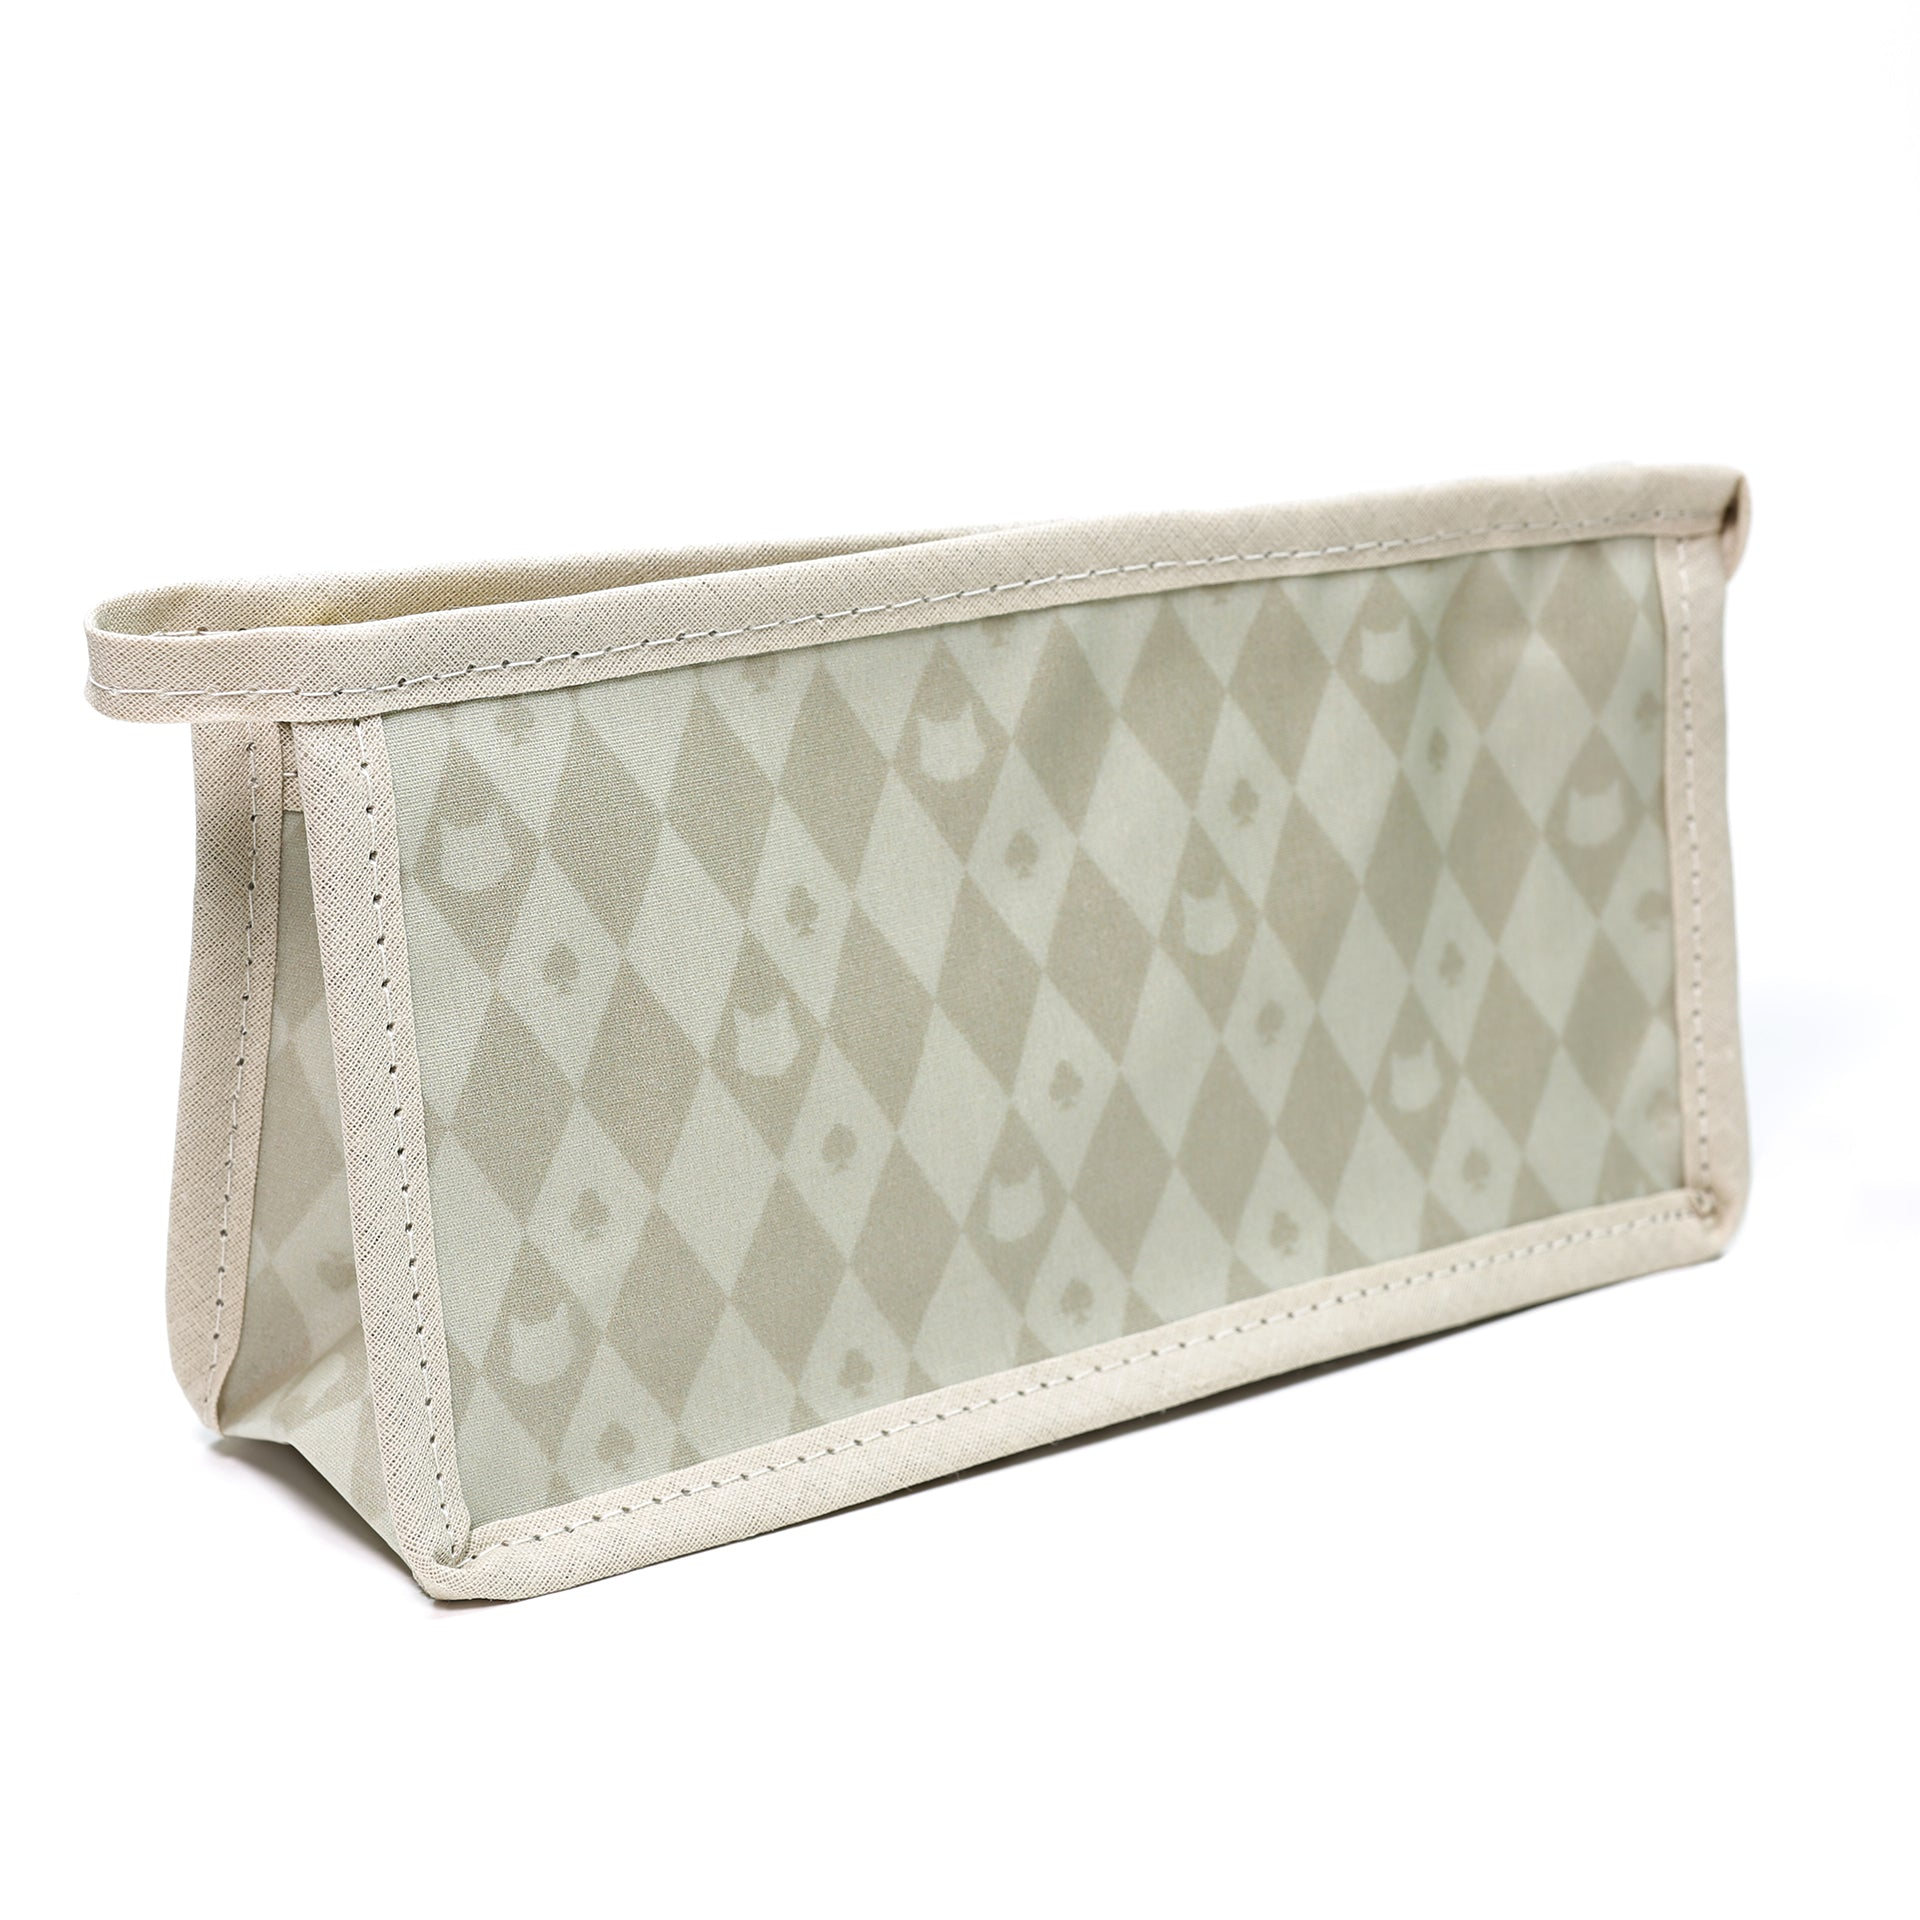 Lady Dinahs Exclusive Cosmetic Bags - cream - medium